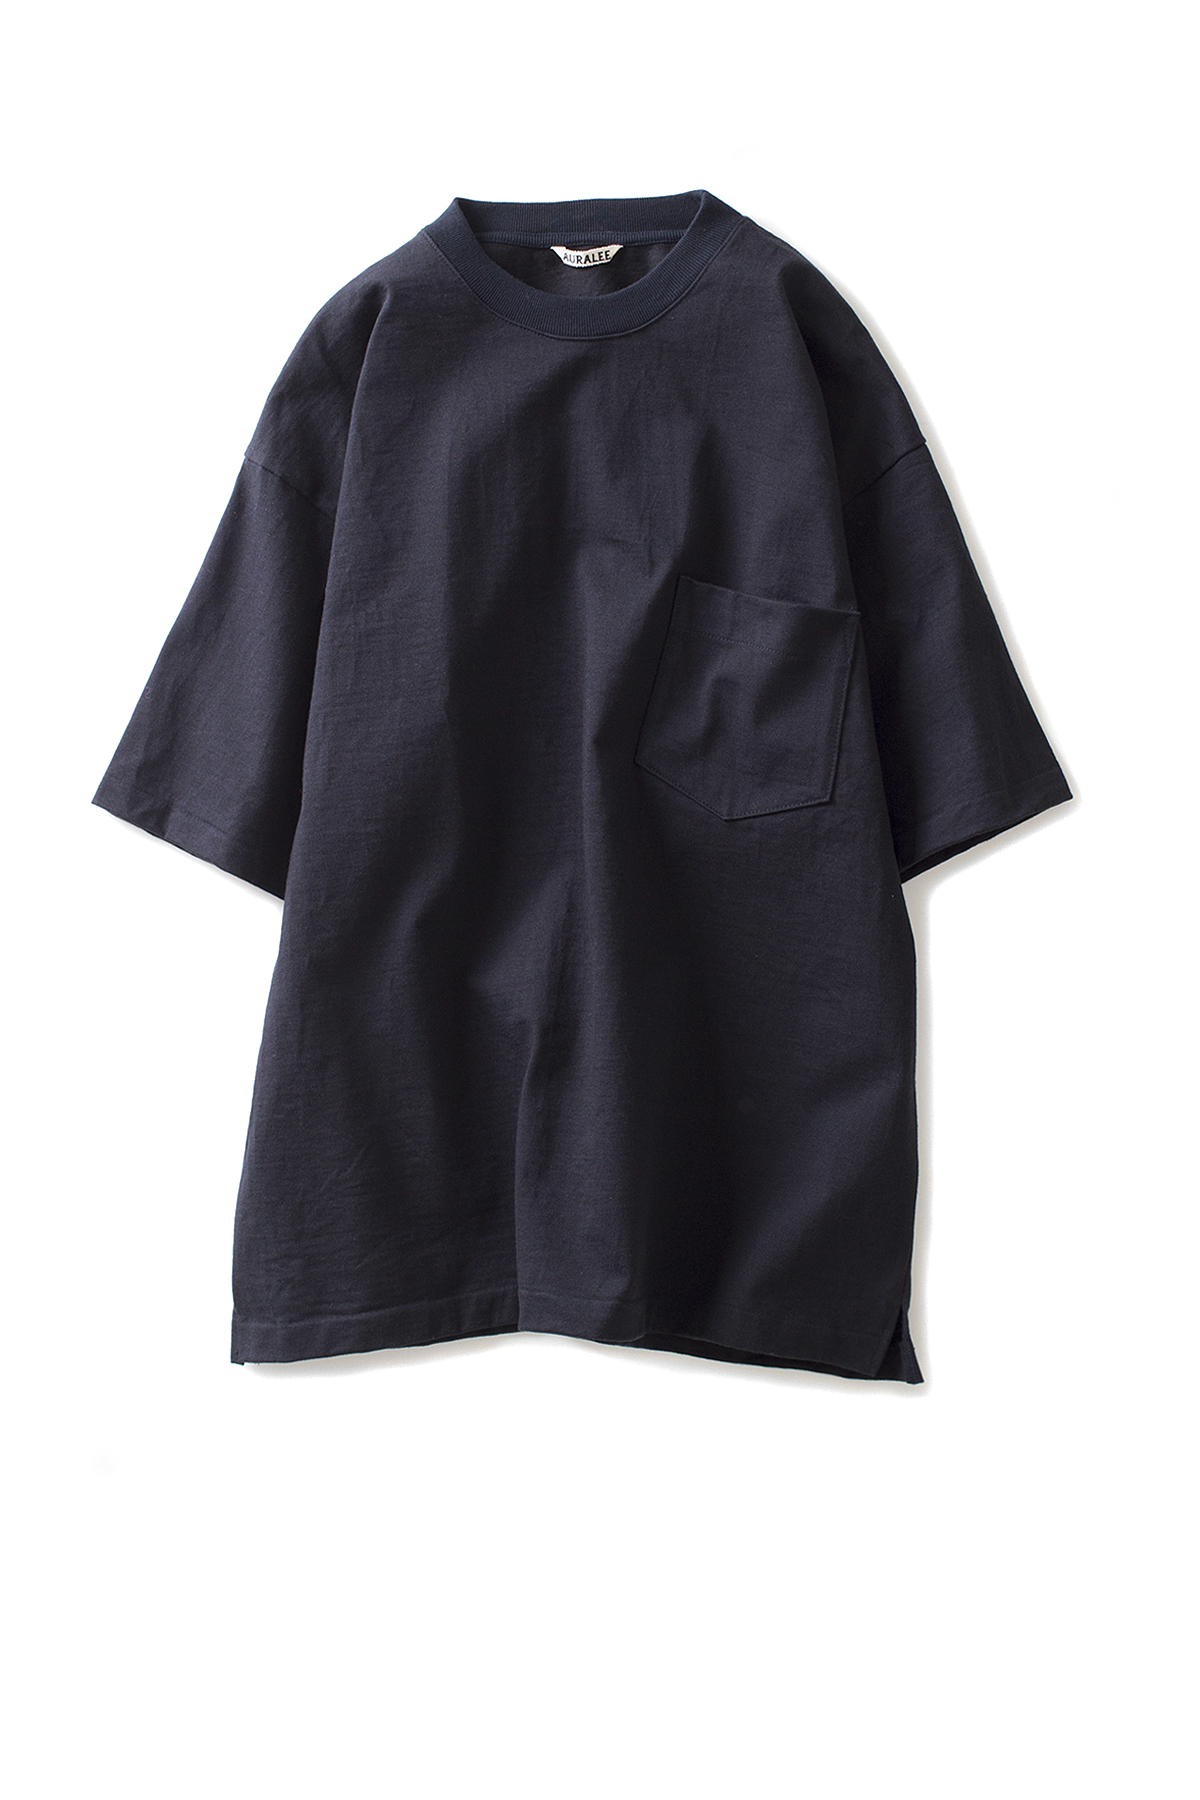 Auralee : Stand-Up Tee (Navy Black)